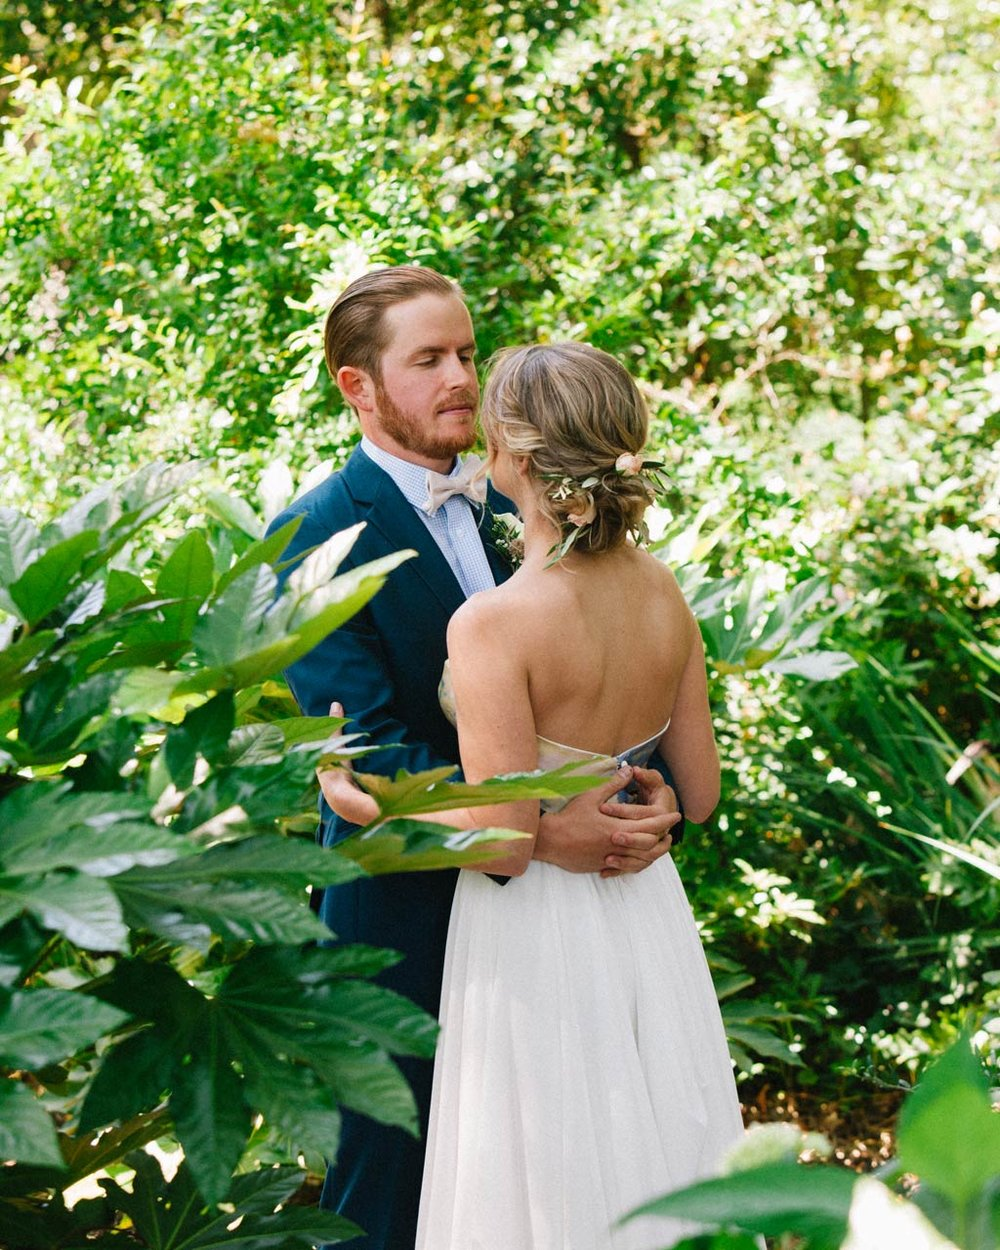 One of our favorite moments during Chelsea & Ryan's First Look captured by Carlos.